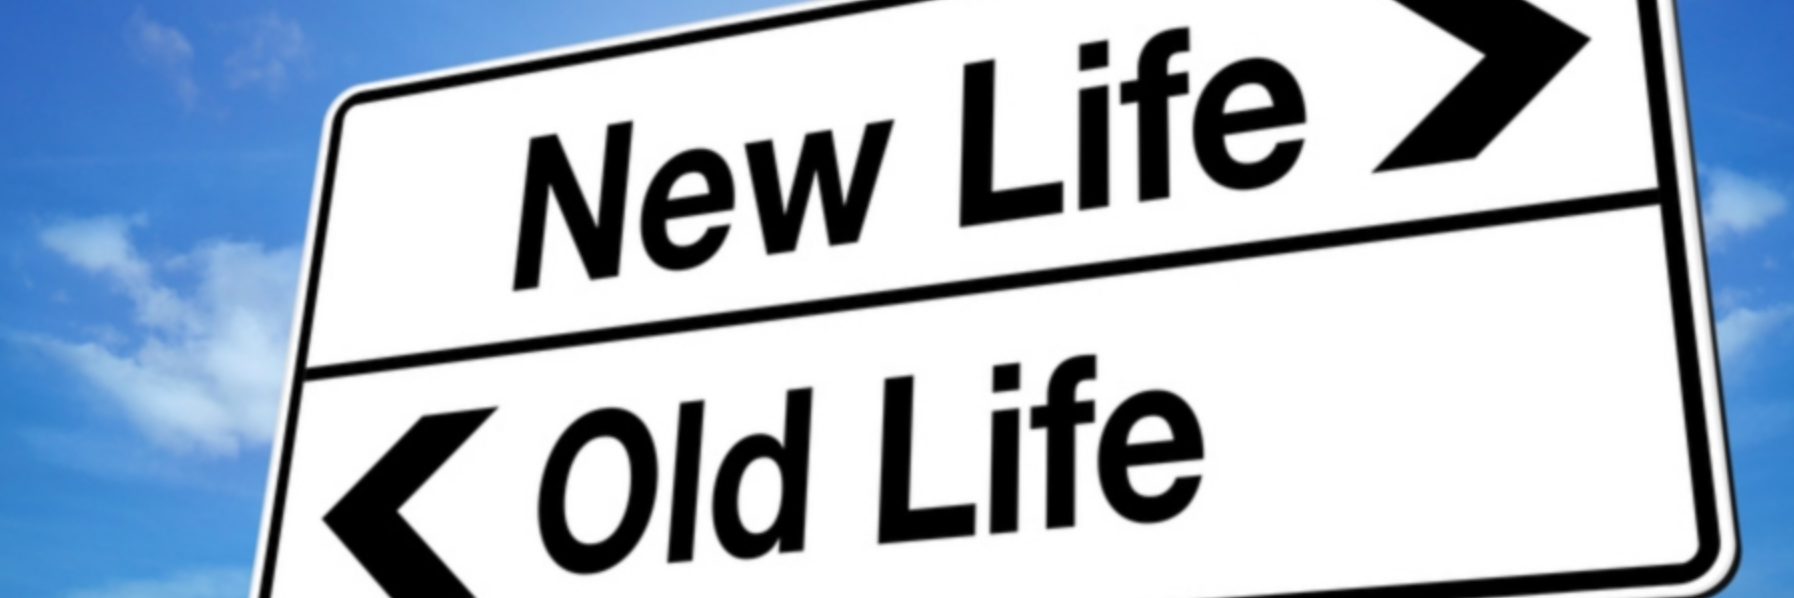 old life - new life.png